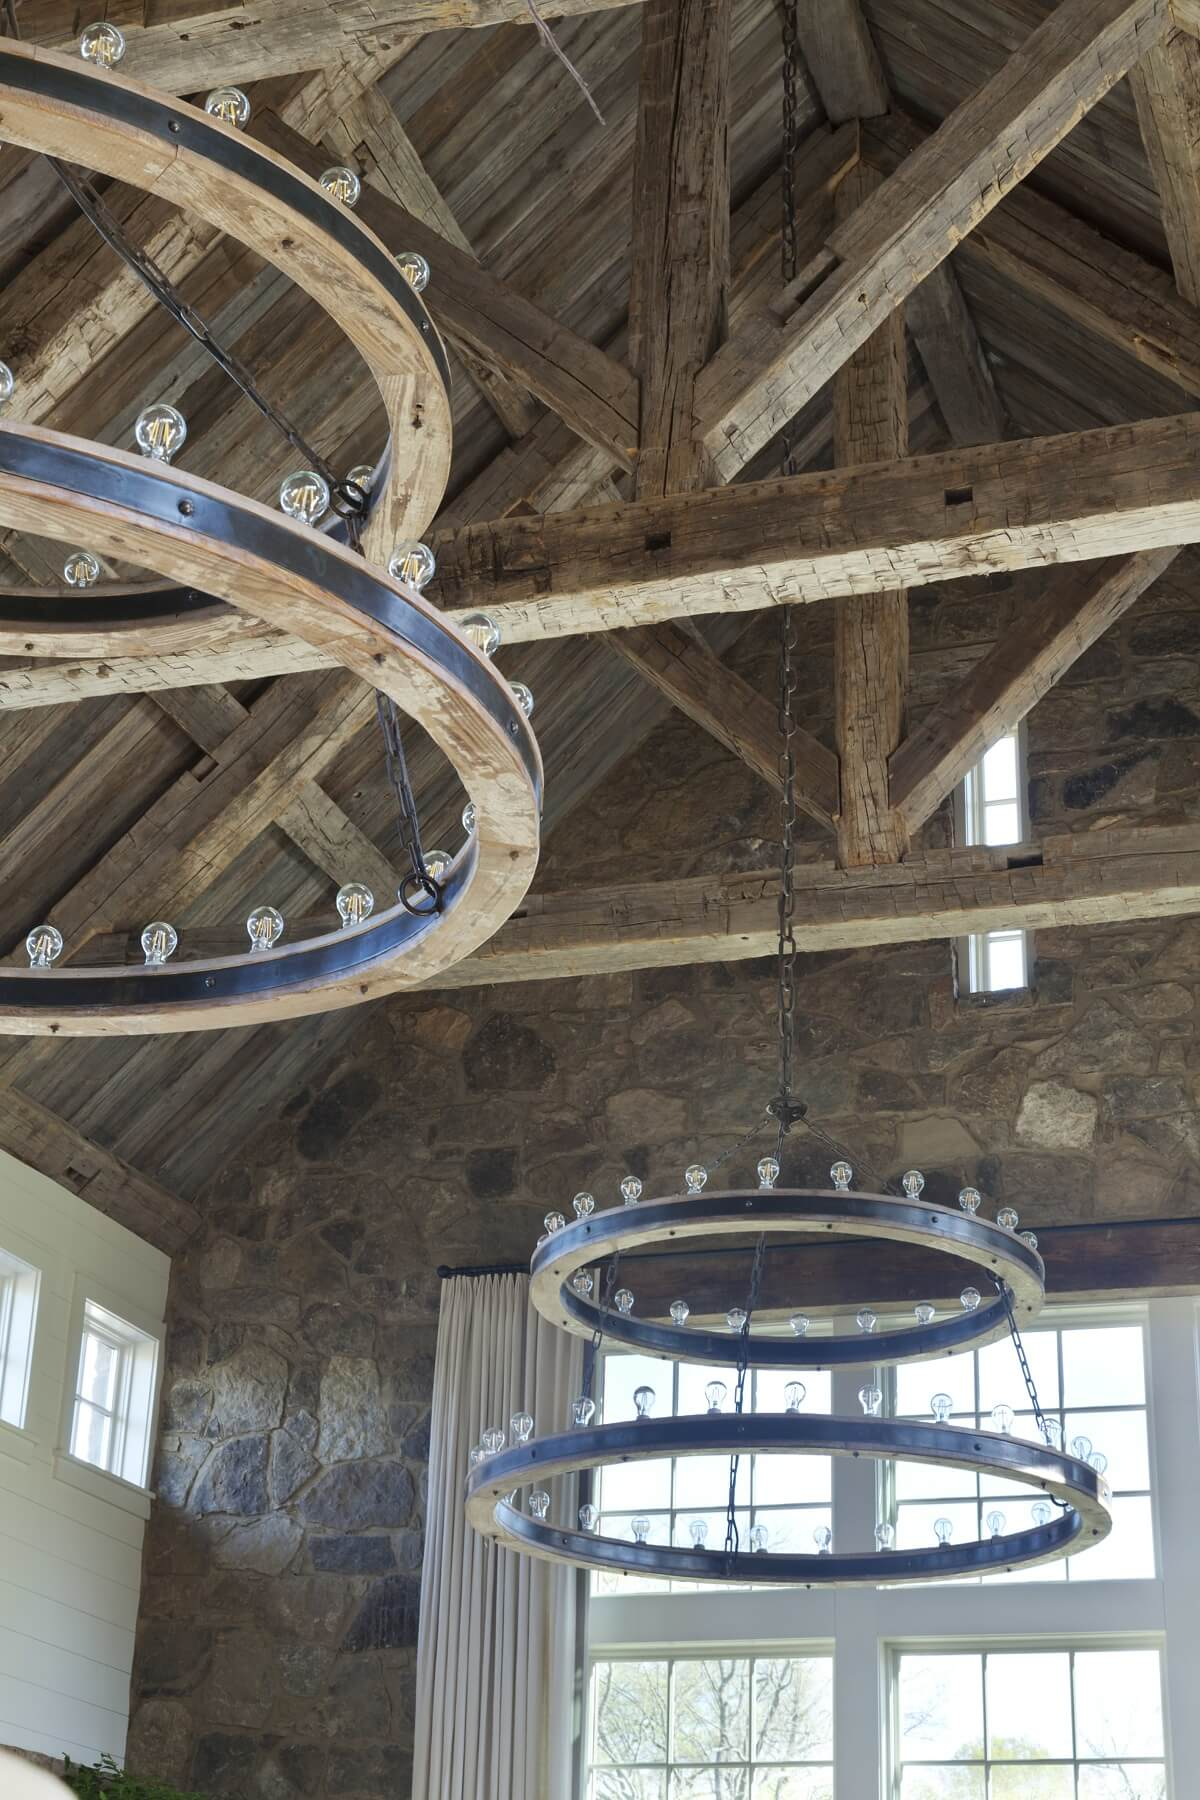 These massive light fixtures — 6-feet wide on the bottom rung and 5-feet wide on the top — are custom-fabricated to fit the scale of this cavernous space.